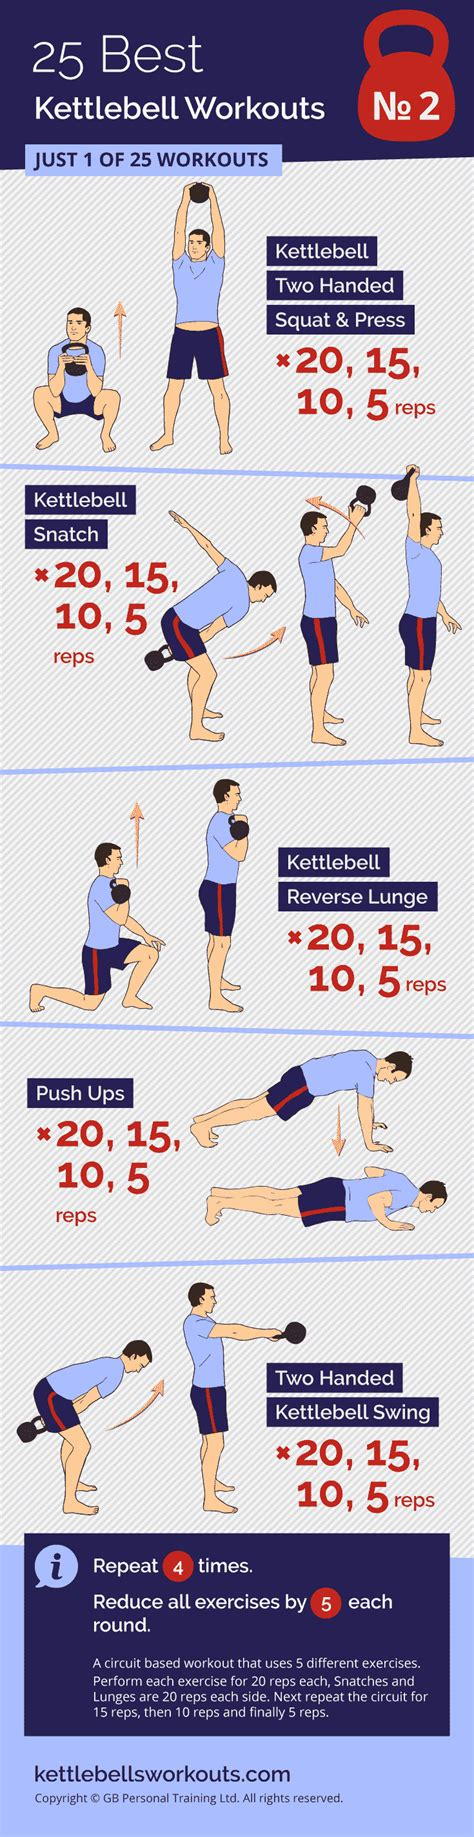 circuit kettlebell take kettle bell workout workouts kettlebellsworkouts body training five exercise snatch strength artikkeli